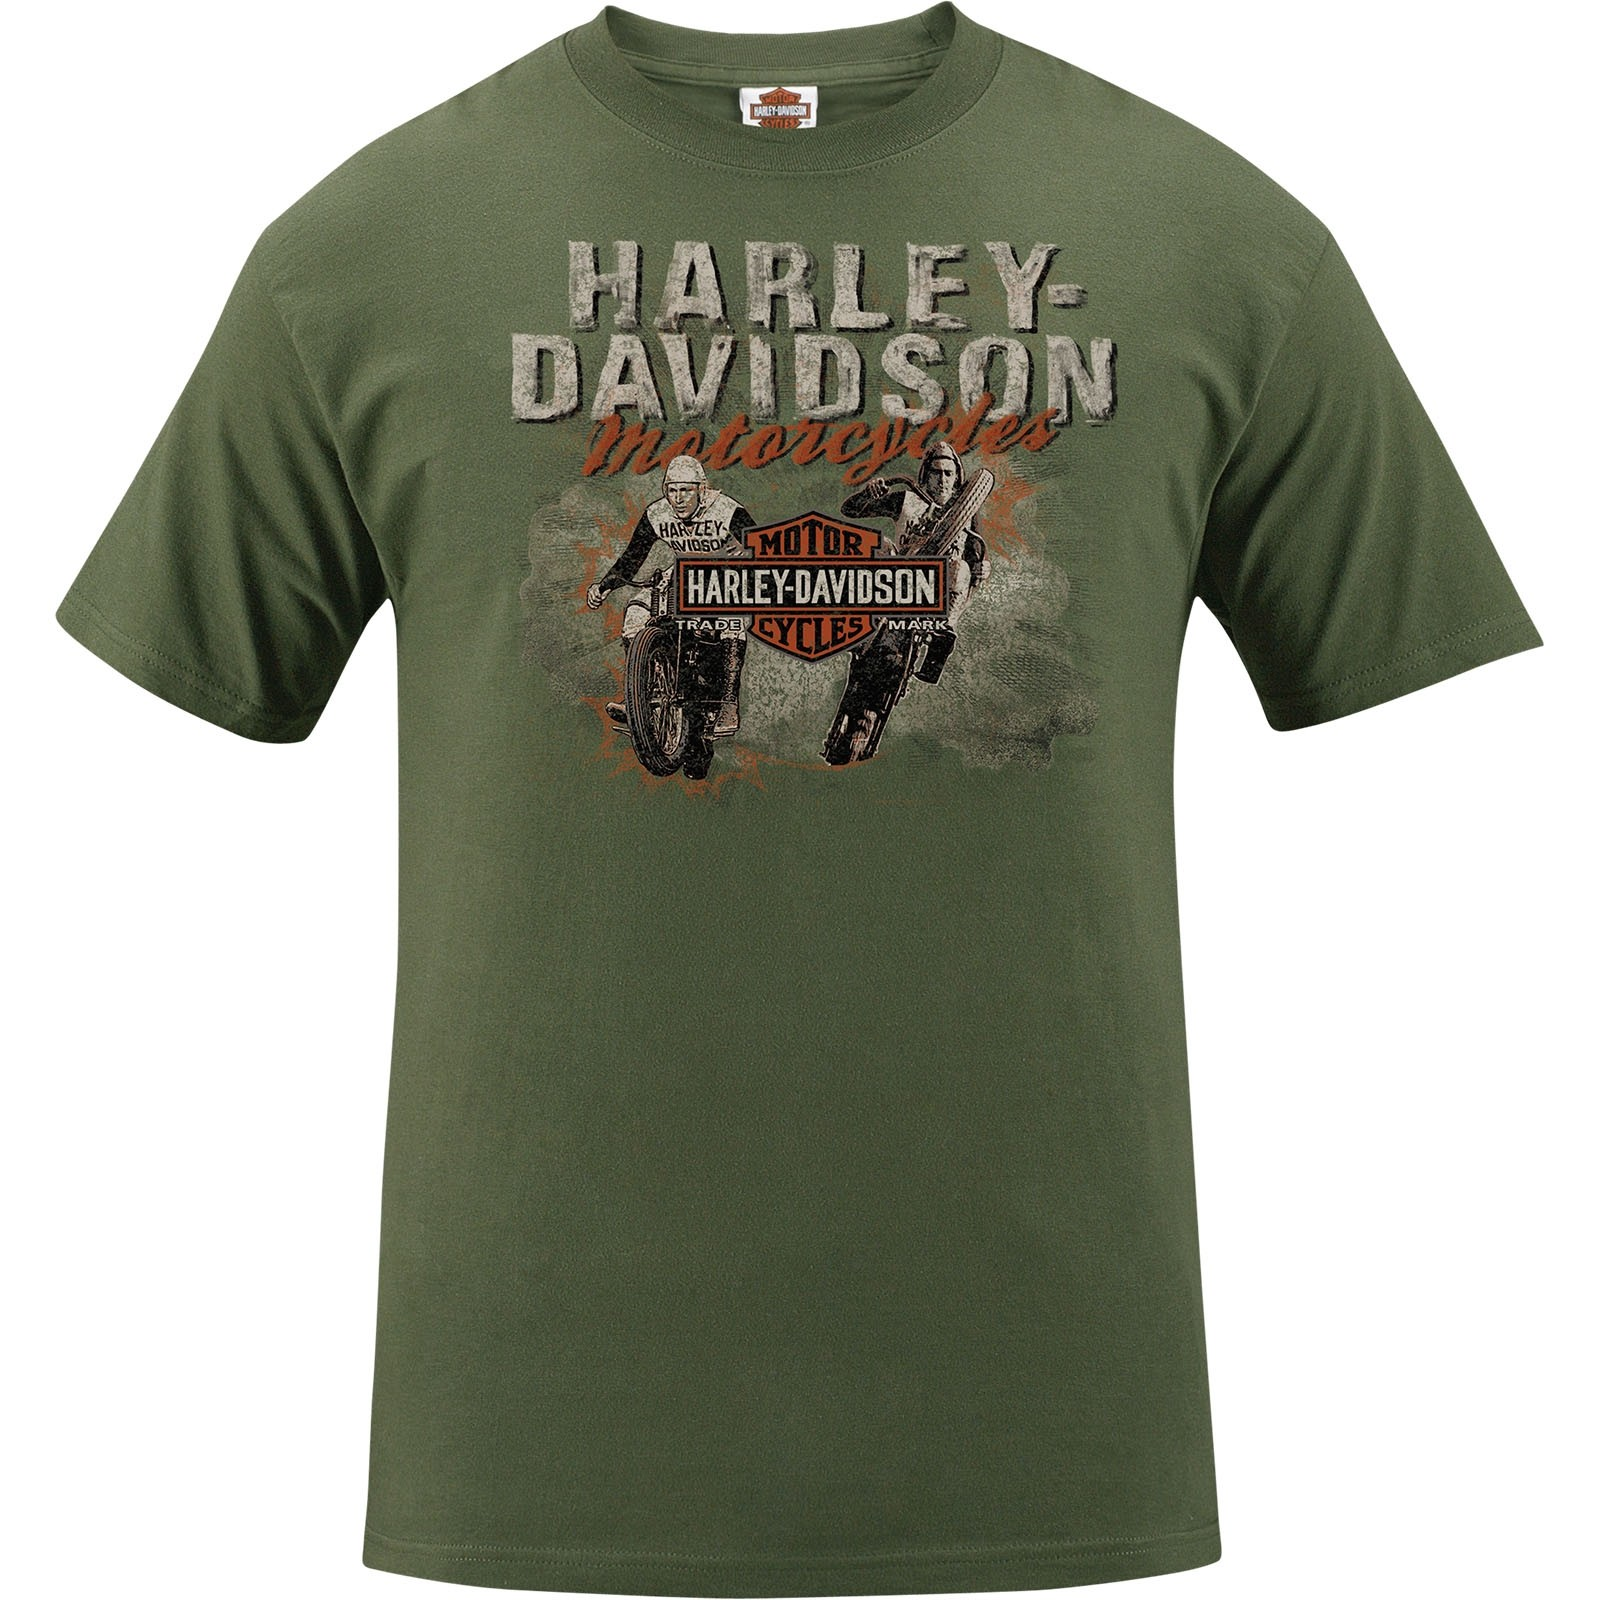 Harley-Davidson Men's Short-Sleeve Tee - NSA Naples | Hill Racers